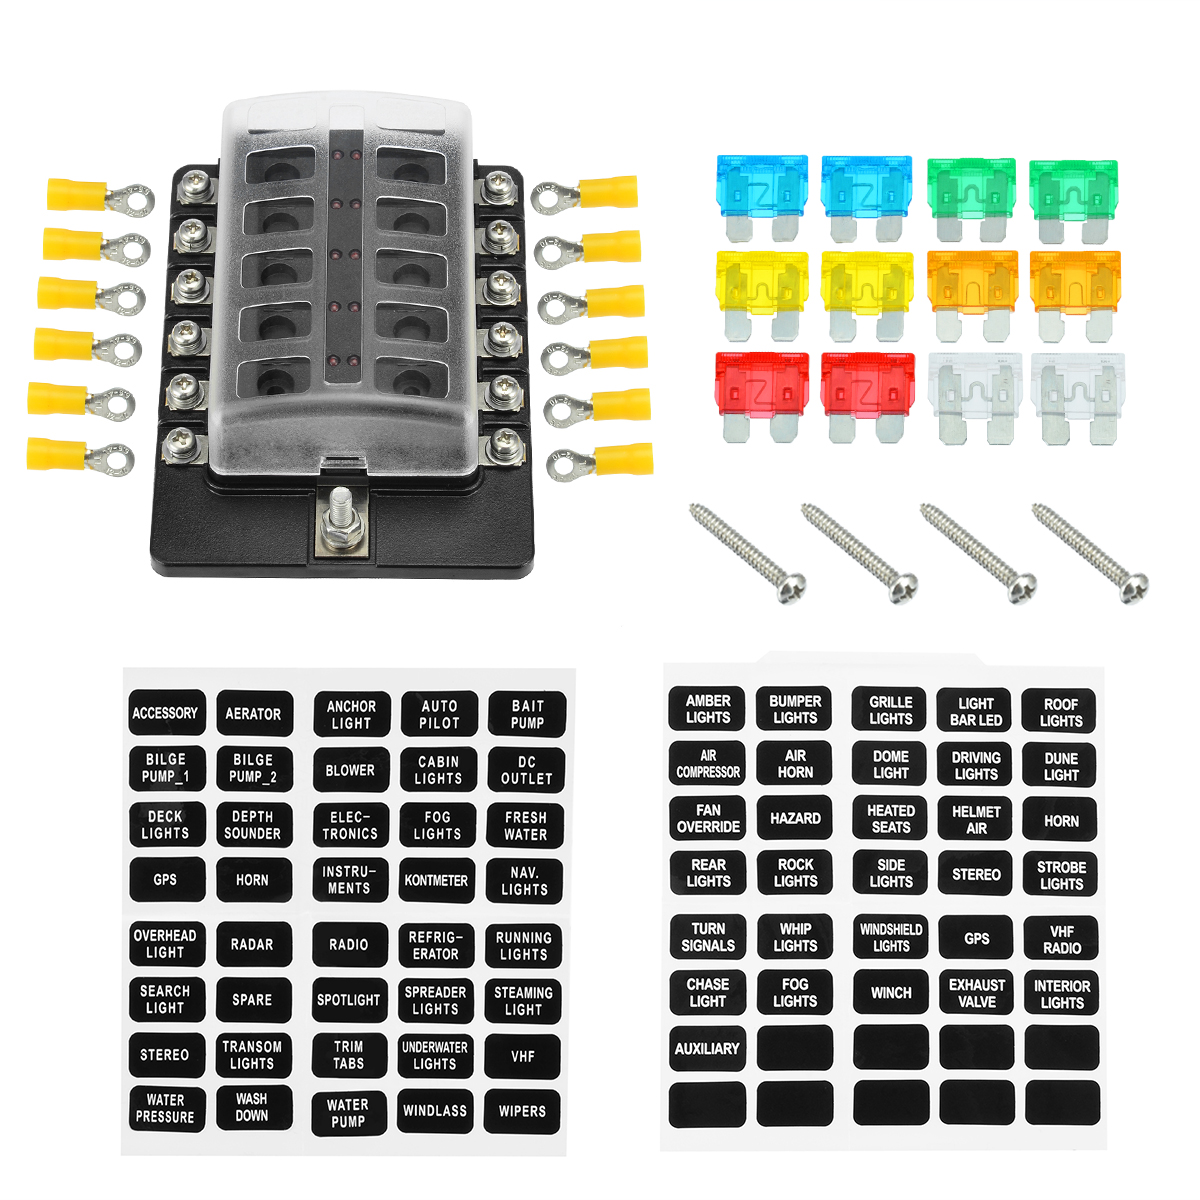 small resolution of new 12 way car boat bus utv blade fuse box ato atc block holder cover 12v with red led indicator yellow terminals screws aliexpress com imall com